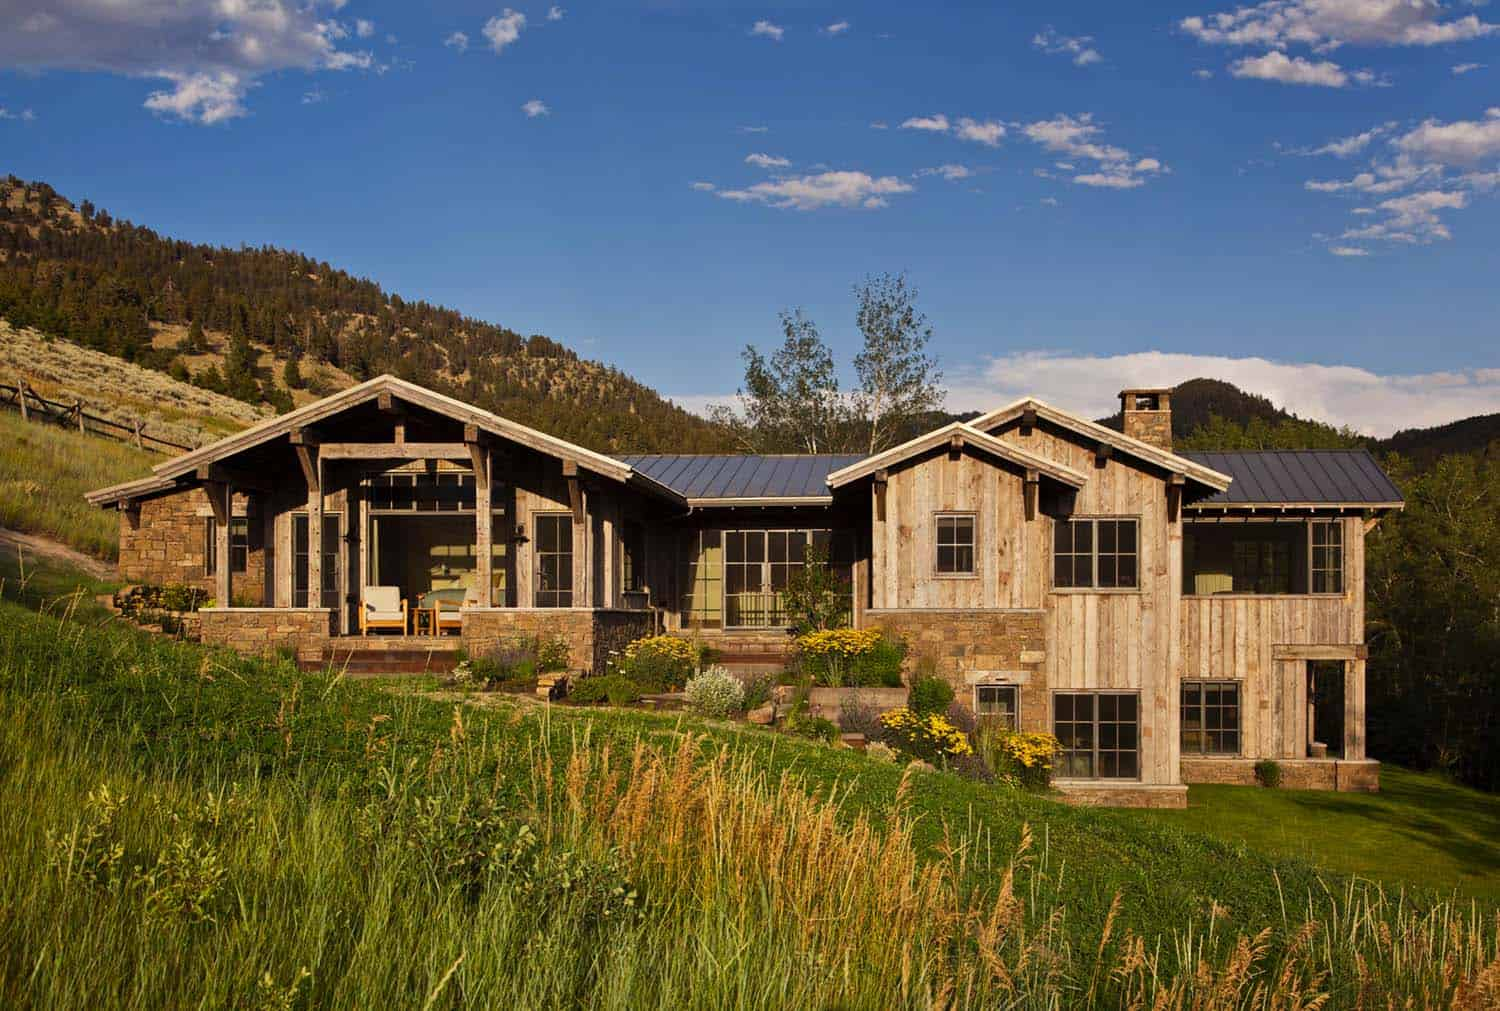 Rustic Mountain Retreat-Miller Roodell Architects-17-1 Kindesign